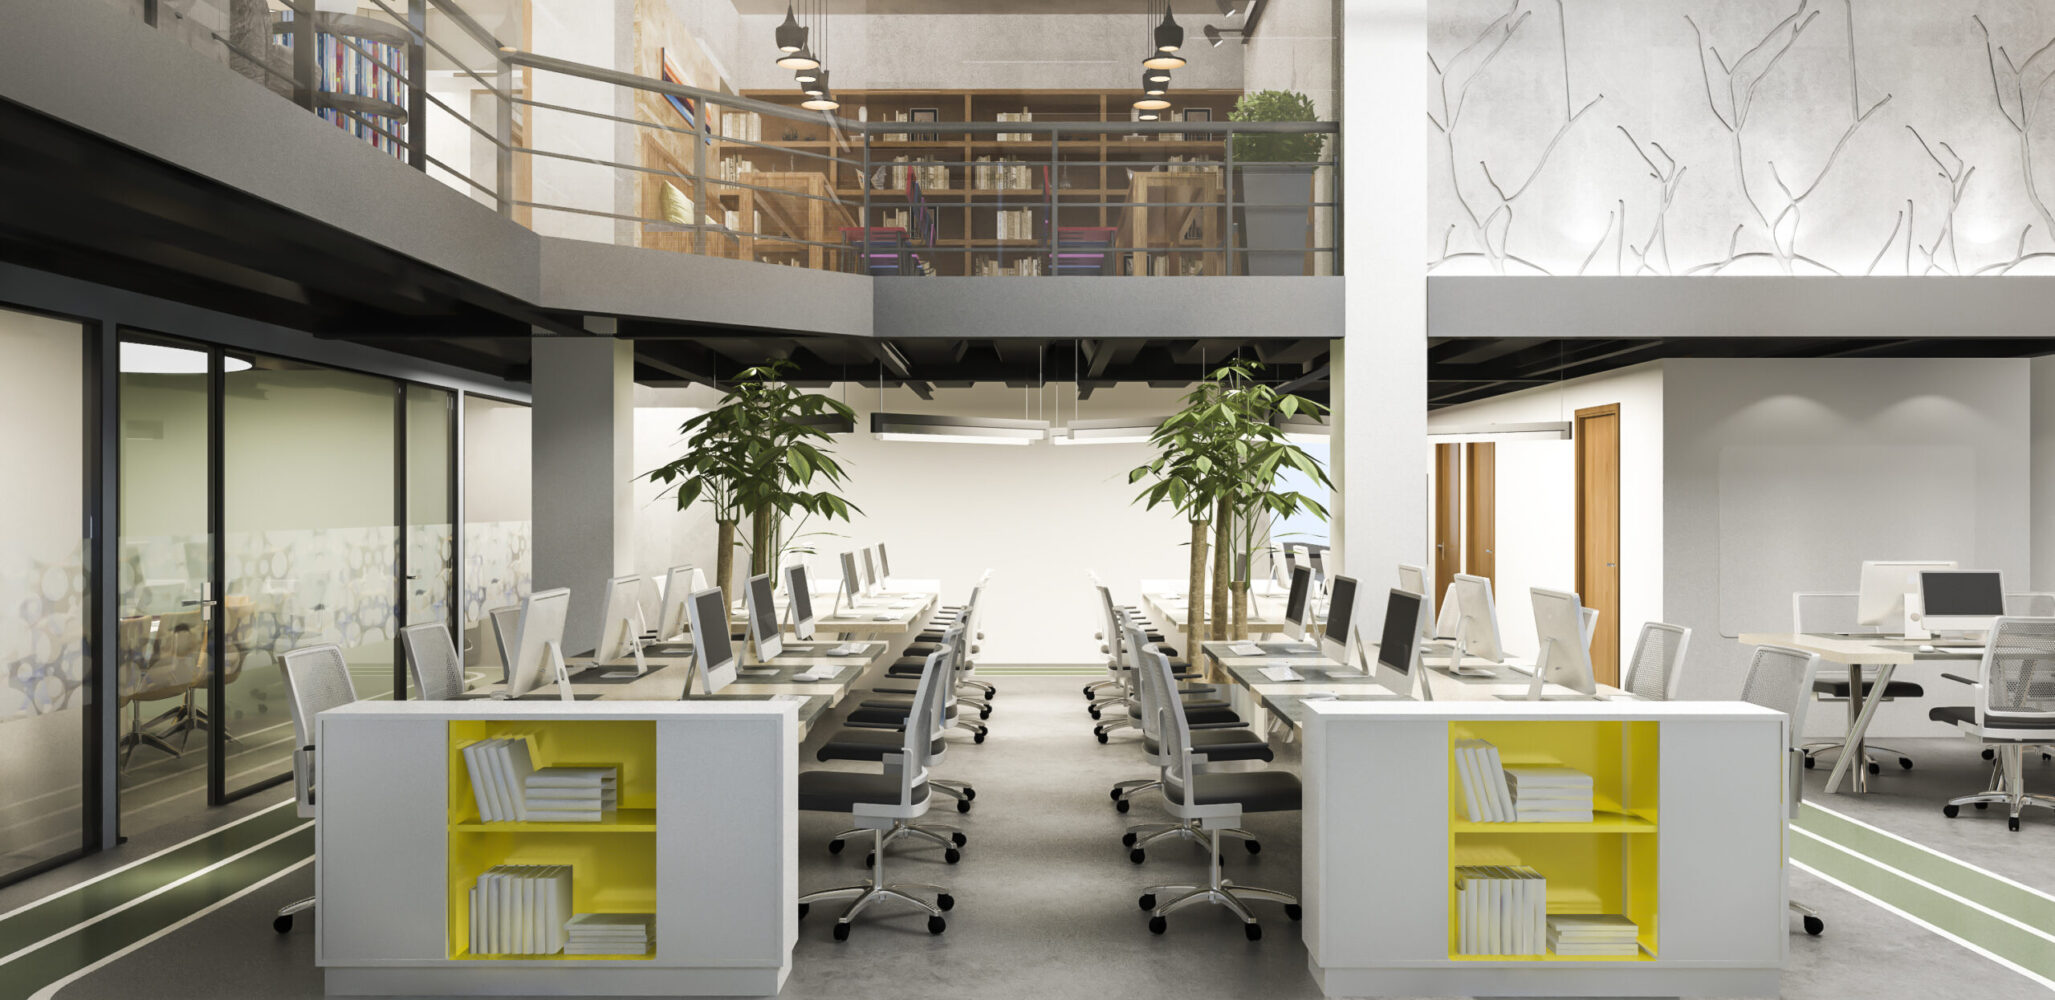 business-meeting-and-working-room-on-office-building